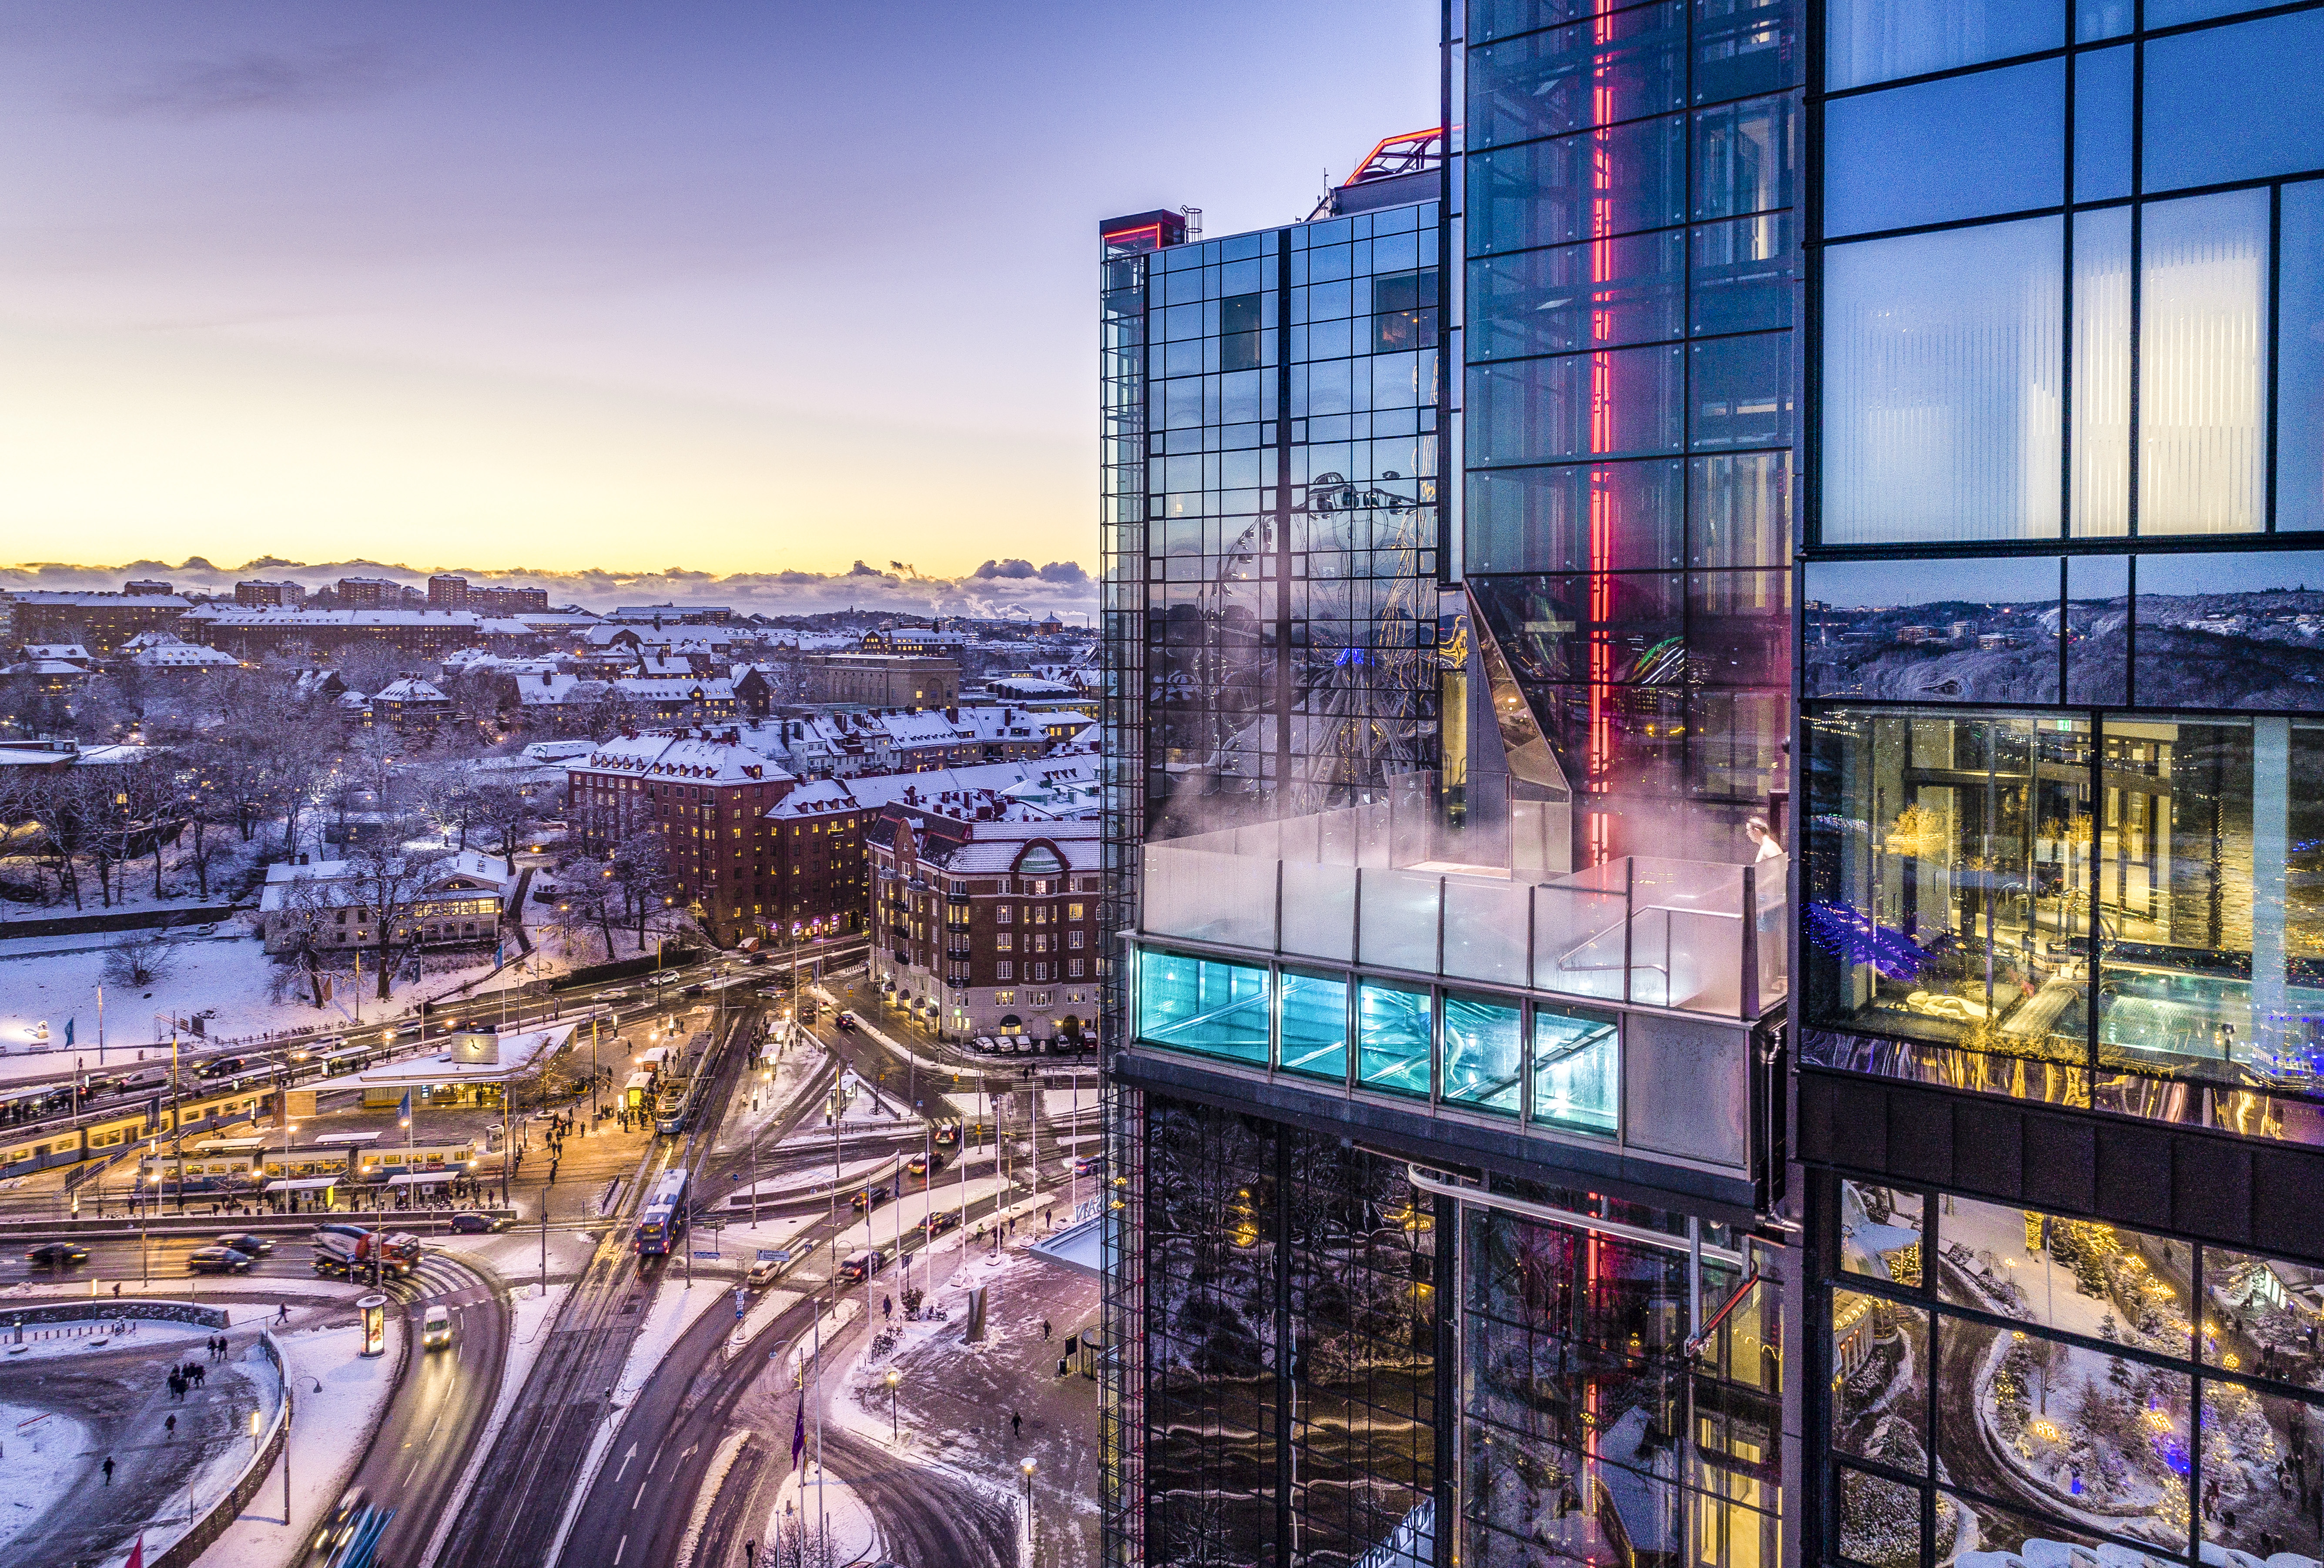 The Product Leadership Days conference hosted by Tolpagorni Product Management took place in Gothia Towers in Gothenburg, Sweden. (credit: Gothia Towers via Flickr)